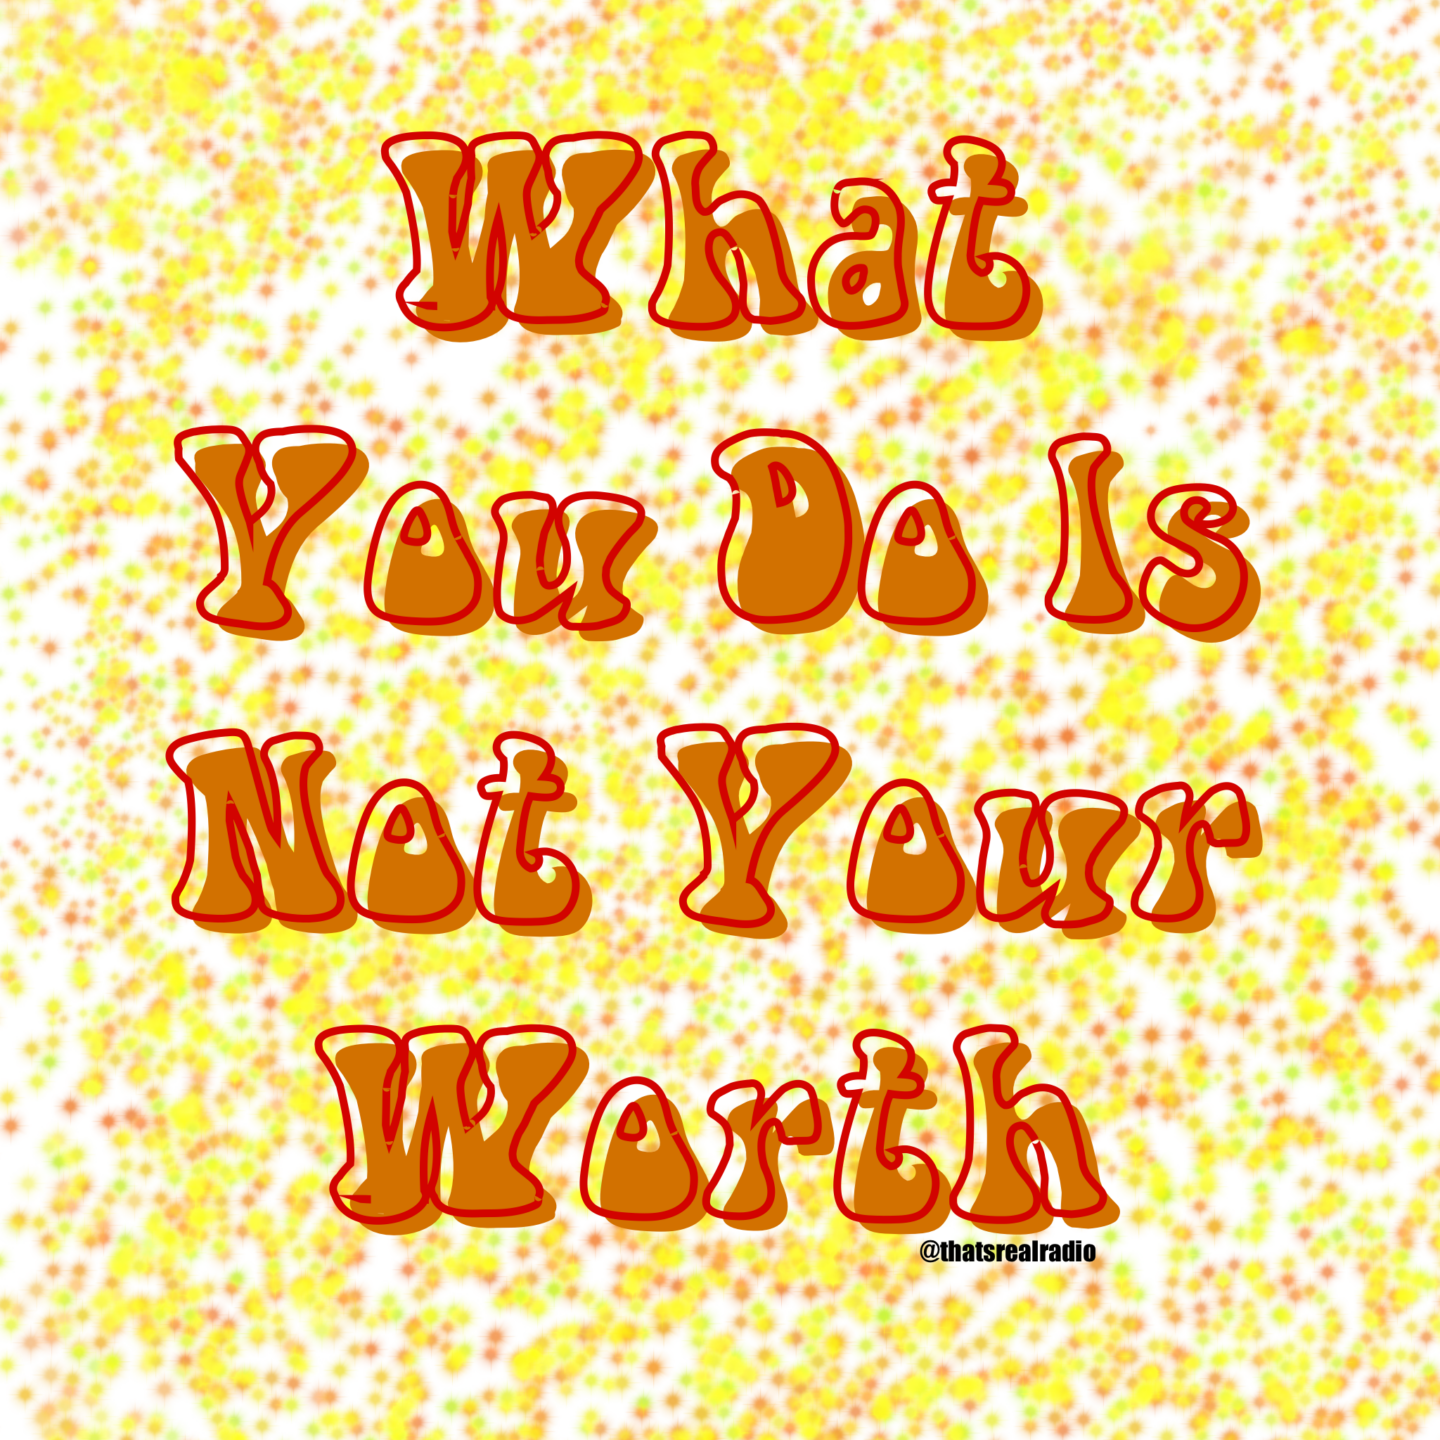 What You Do is Not Your Worth